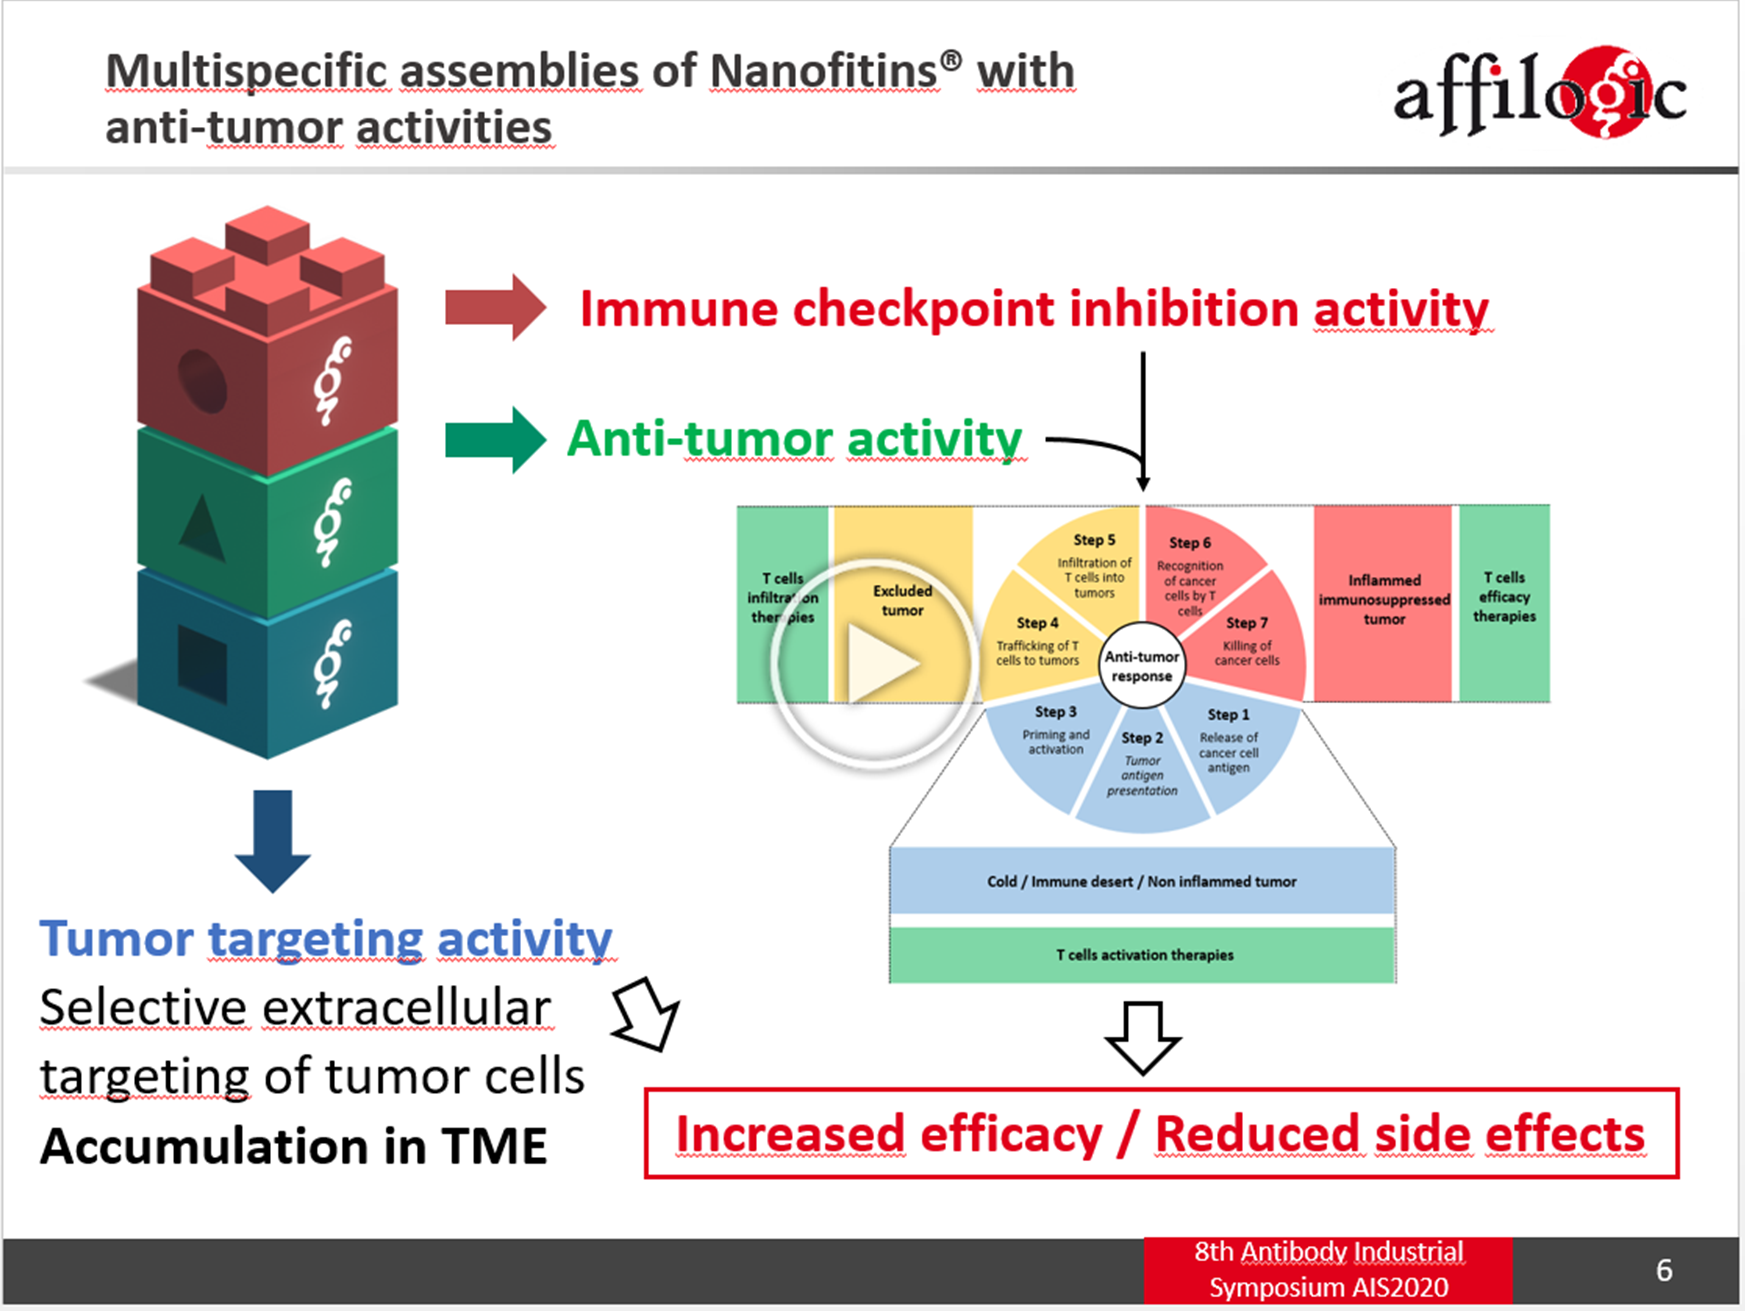 Development of multispecific assemblies of Nanofitins with anti-tumor activities